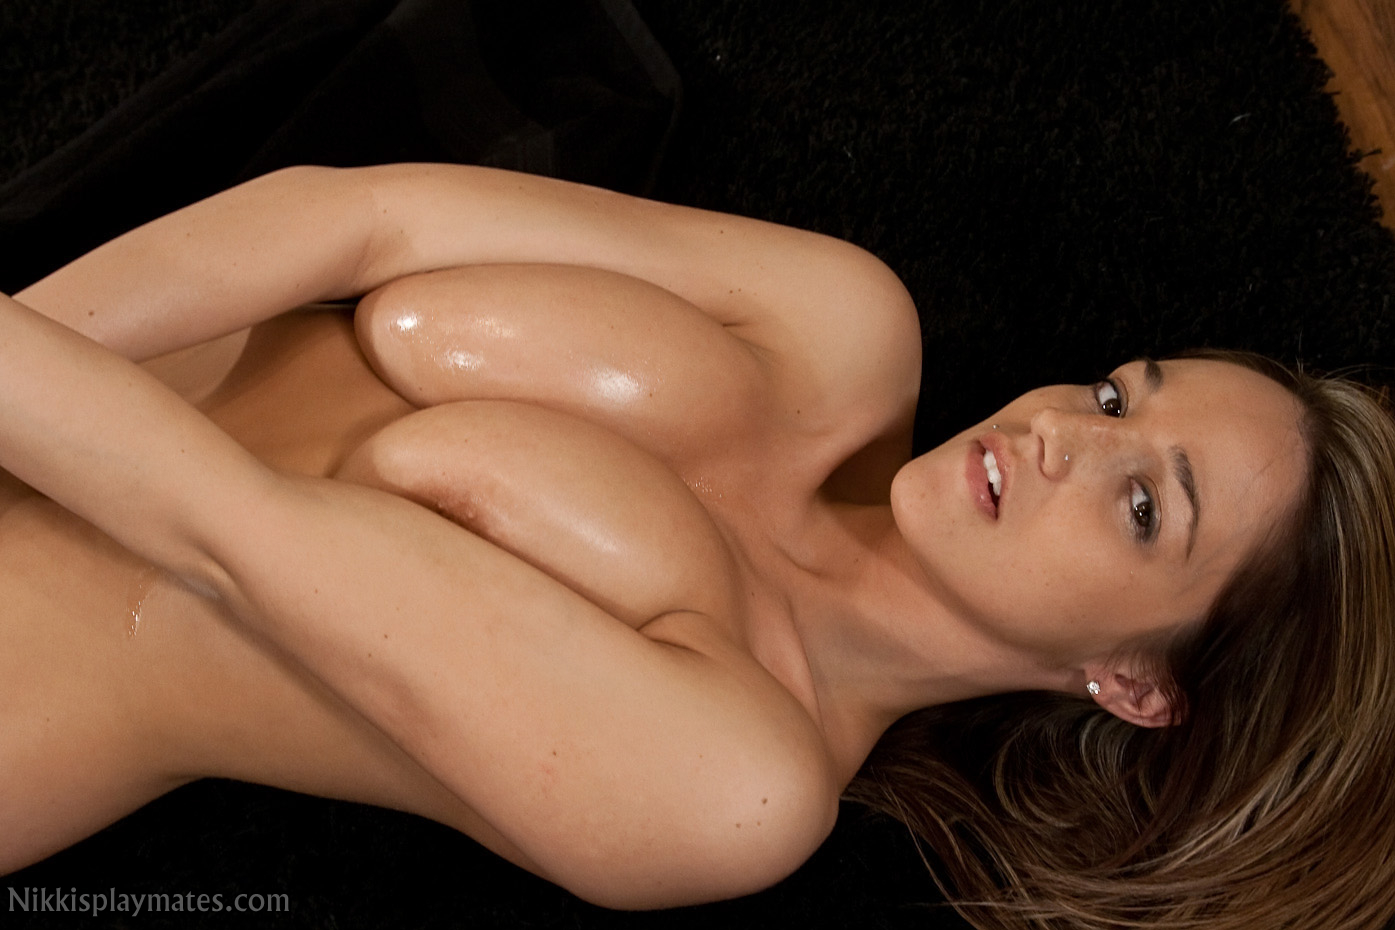 Nikki Sims - Nikki Sims Nude Baby Oil Fun at AmateurIndex.com